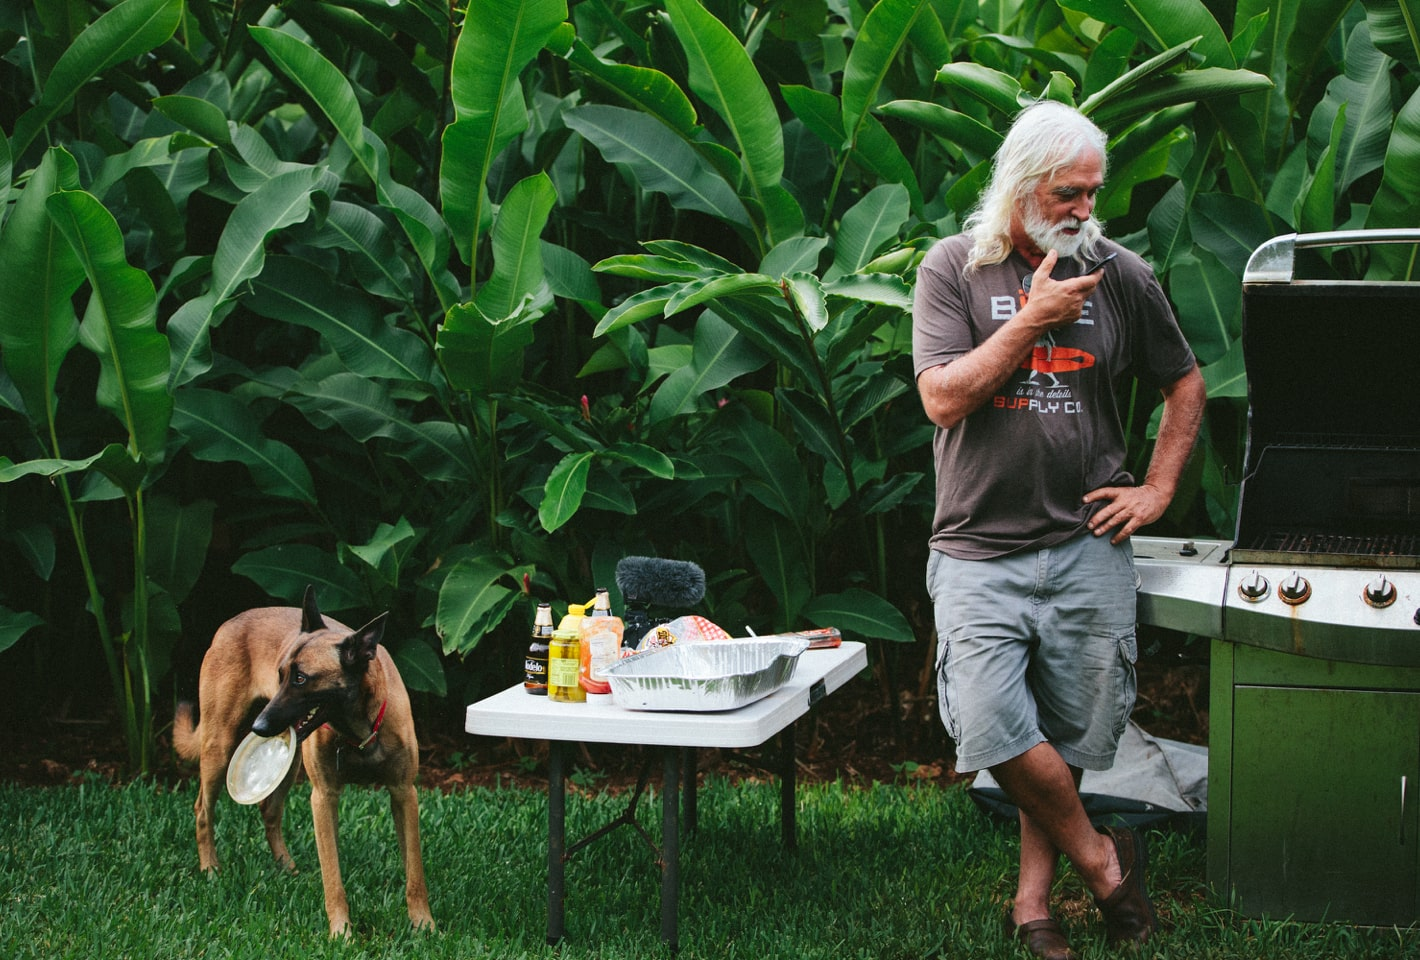 man and dog grilling out